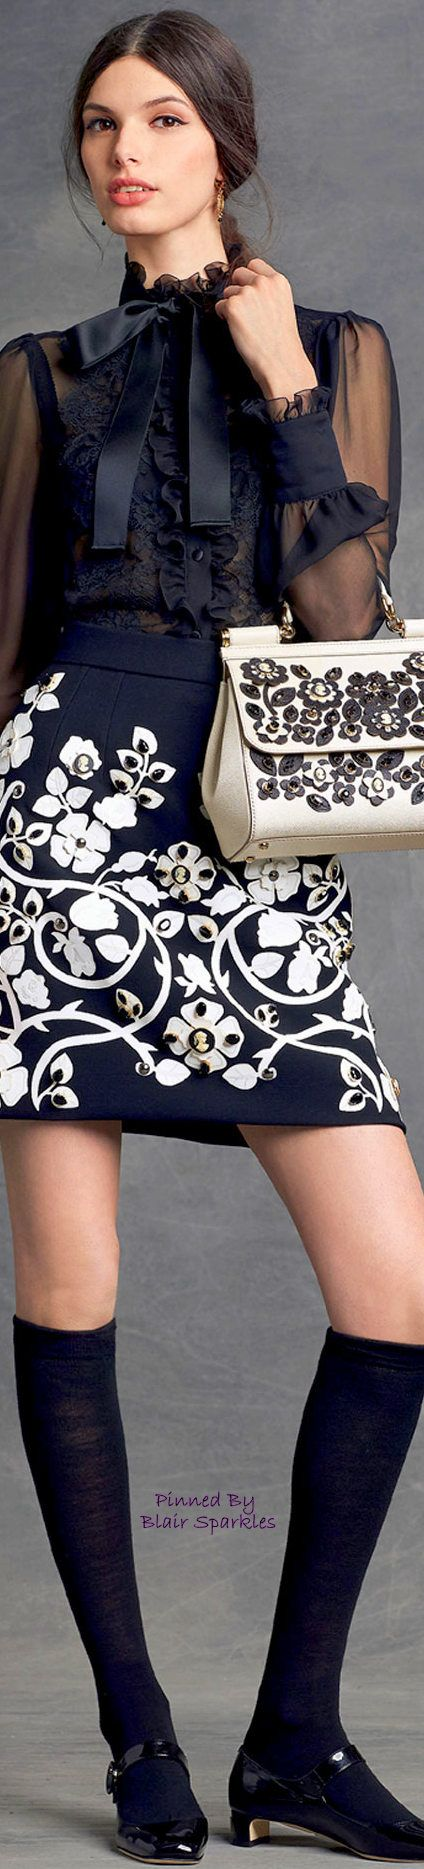 DOLCE AND GABBANA WINTER 2016 ♕♚εїз | BLAIR SPARKLES |